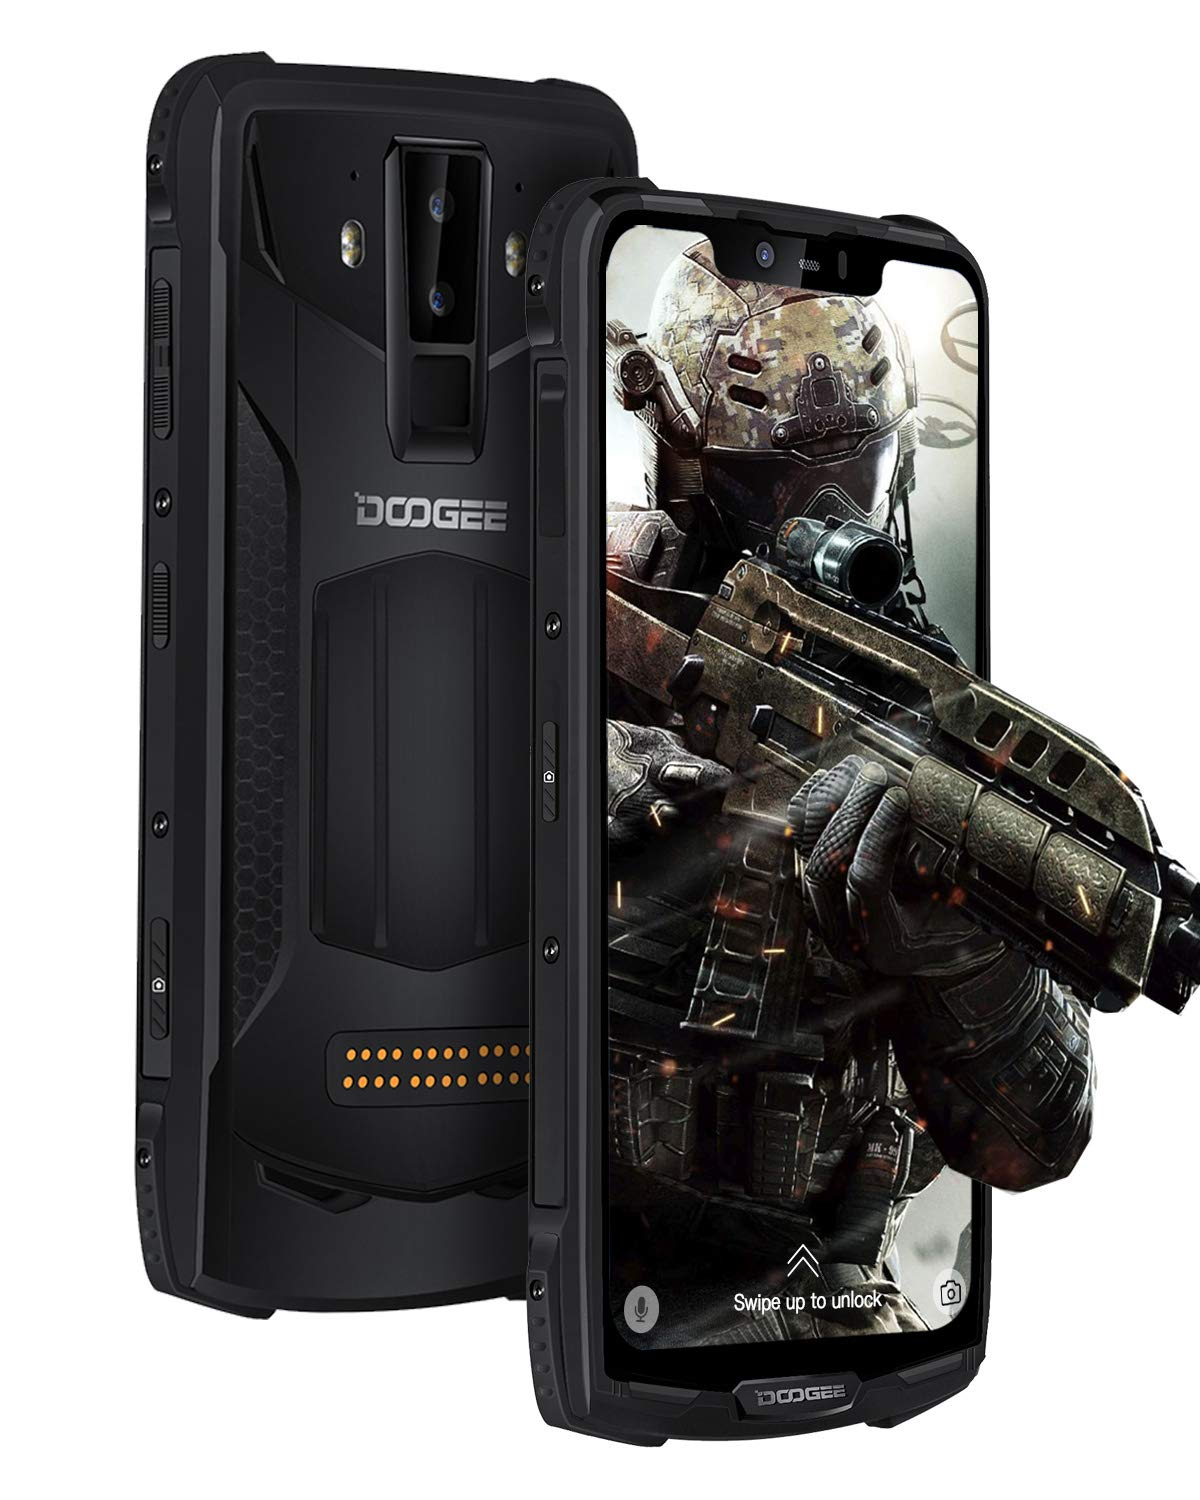 Rugged Mobile Phone Unlocked, DOOGEE S90 Pro Android 9.0 Tough Smartphone Outdoor, 6+128GB Cellphone, 6.18 inch FHD Screen, IP68 Waterproof/Shockproof, 16+8MP AI Camera/5050mAh/GPS/NFC/Wireless Charge